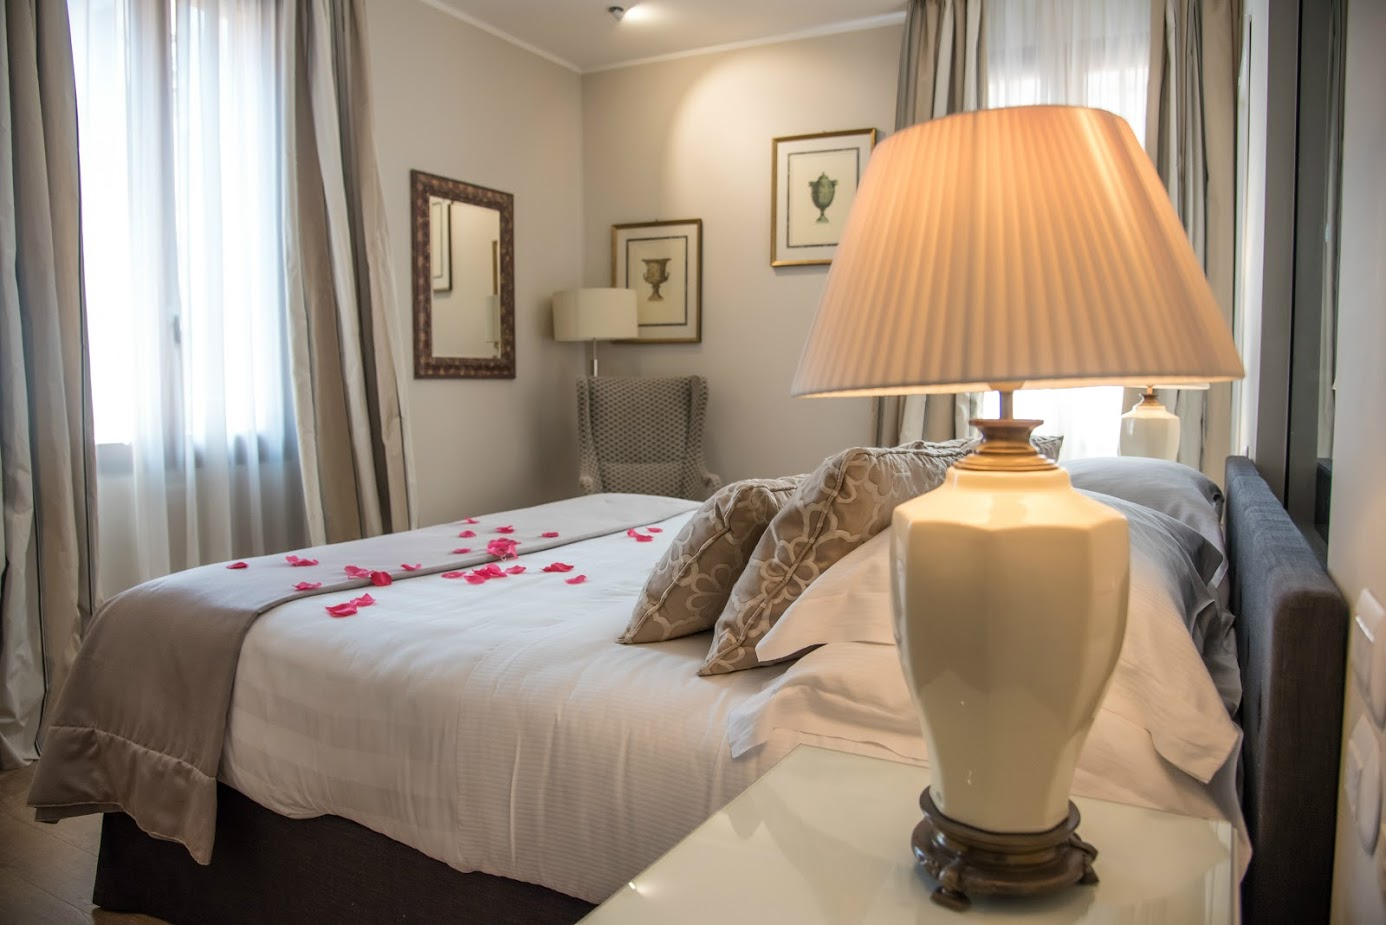 Monte cenci hotel boutique hotels rome for Best boutique hotels in rome 2015